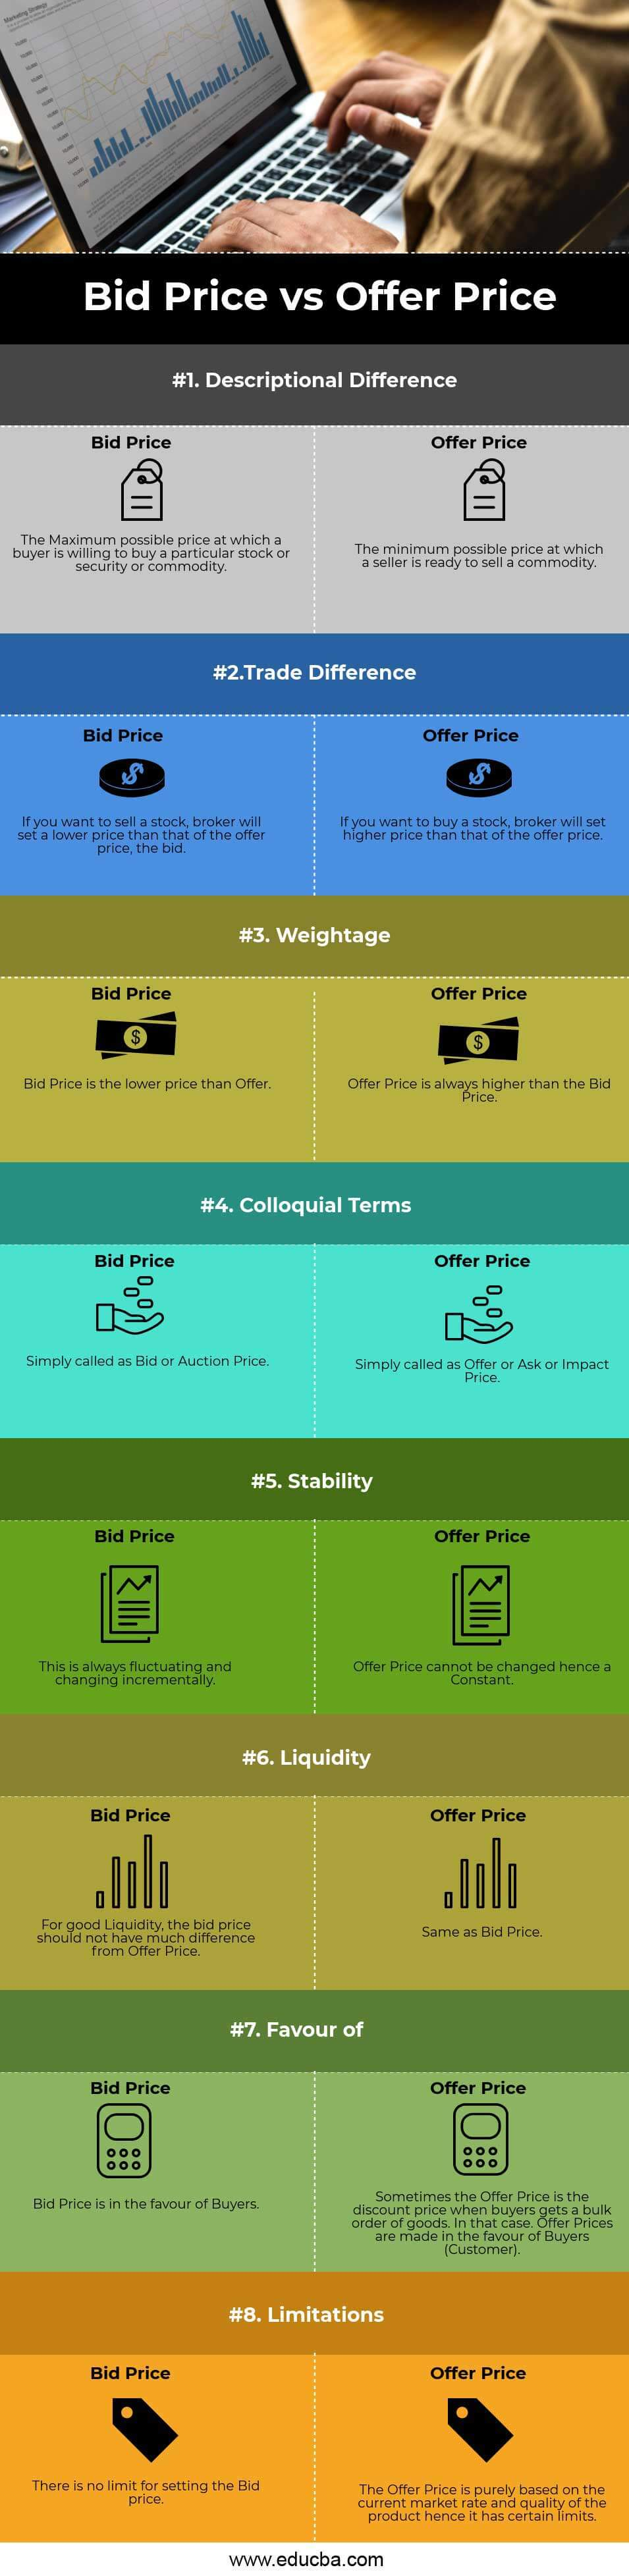 Bid Price Vs Offer Price Top 8 Differences To Learn With Infographics